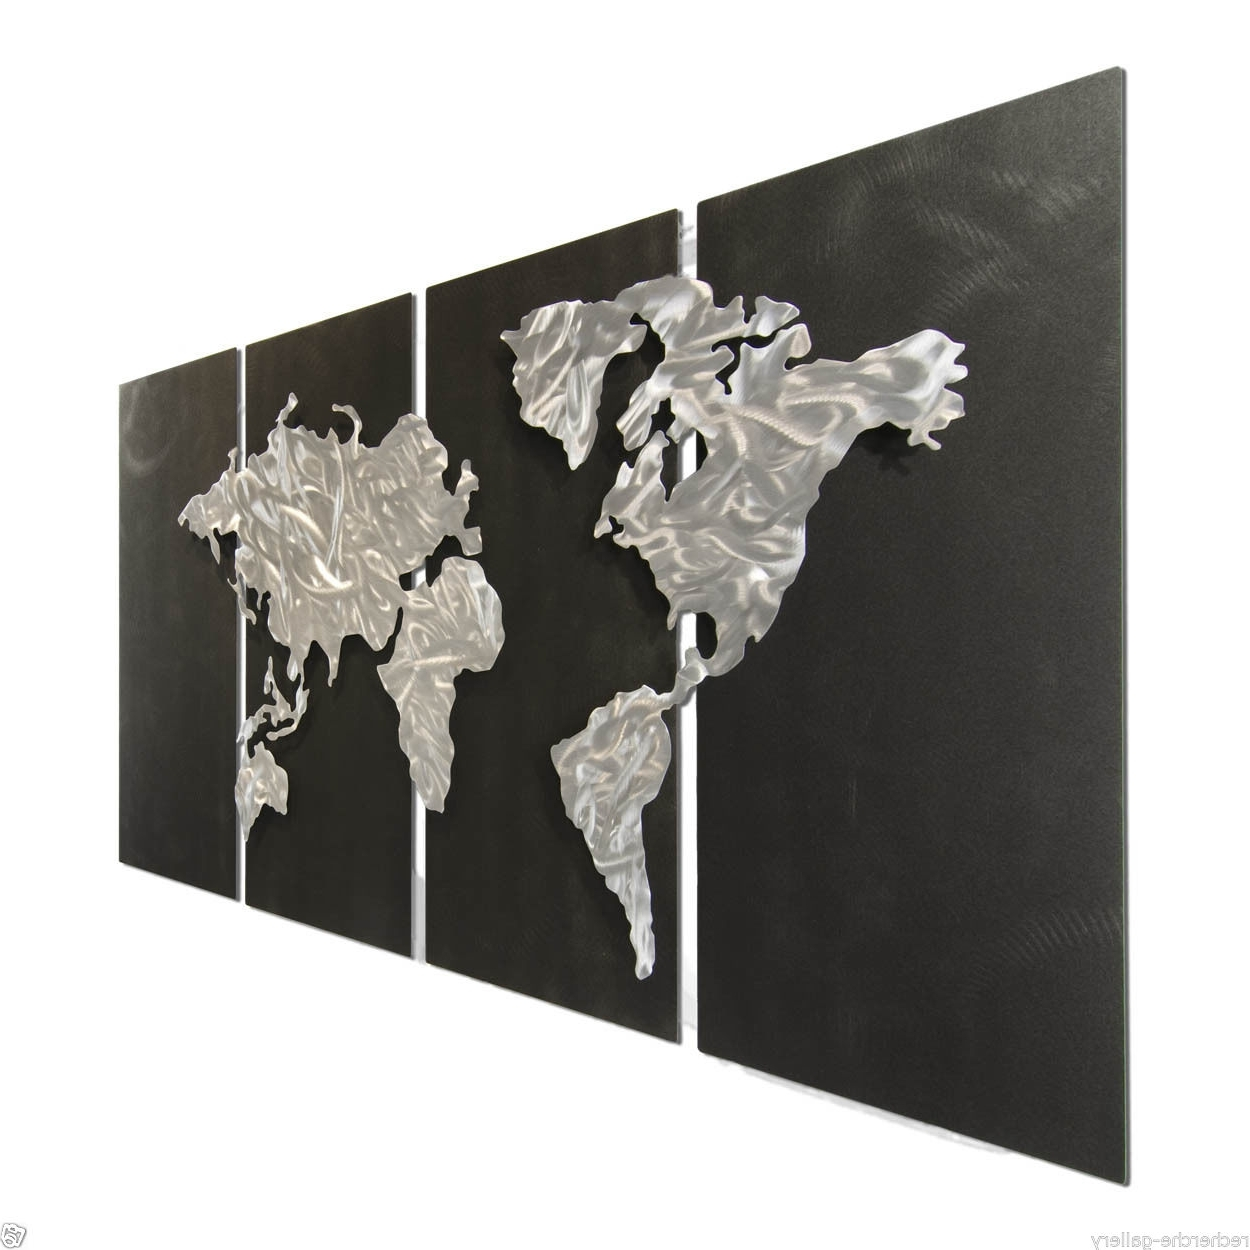 Ash Carl Metal Wall Art With Widely Used Fine Art Sculptures , Art (View 7 of 15)